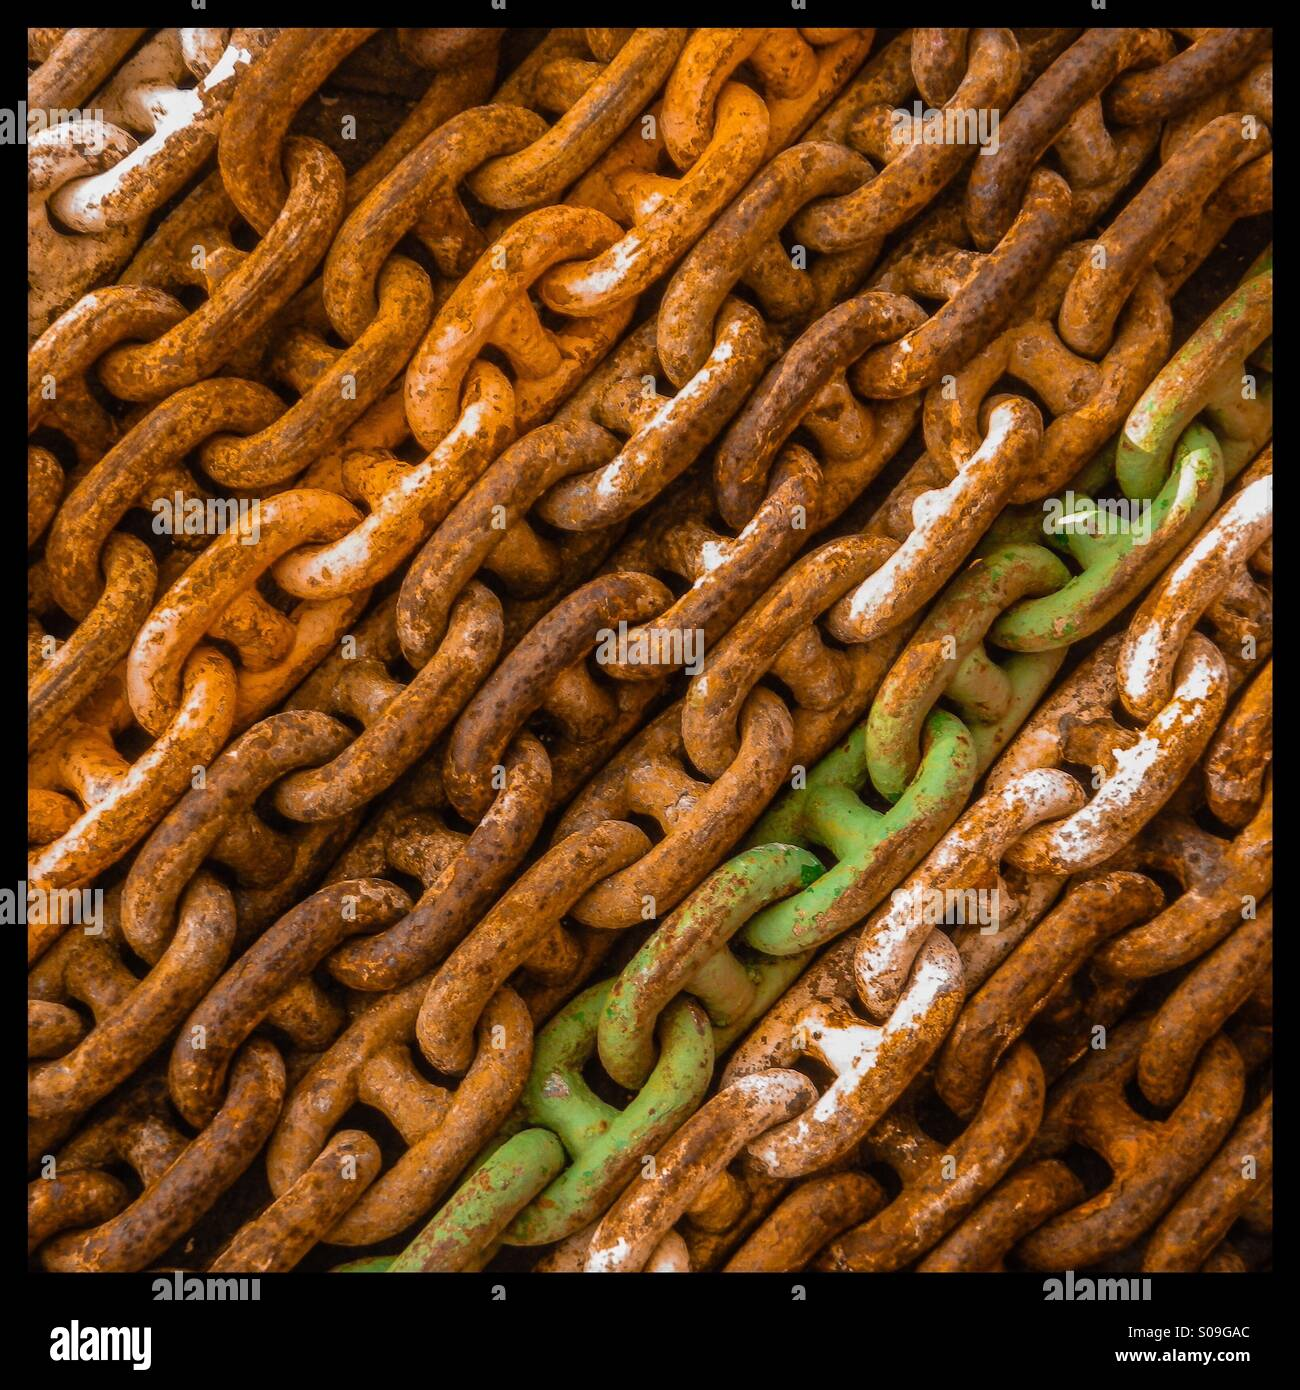 Rusty chains - Stock Image